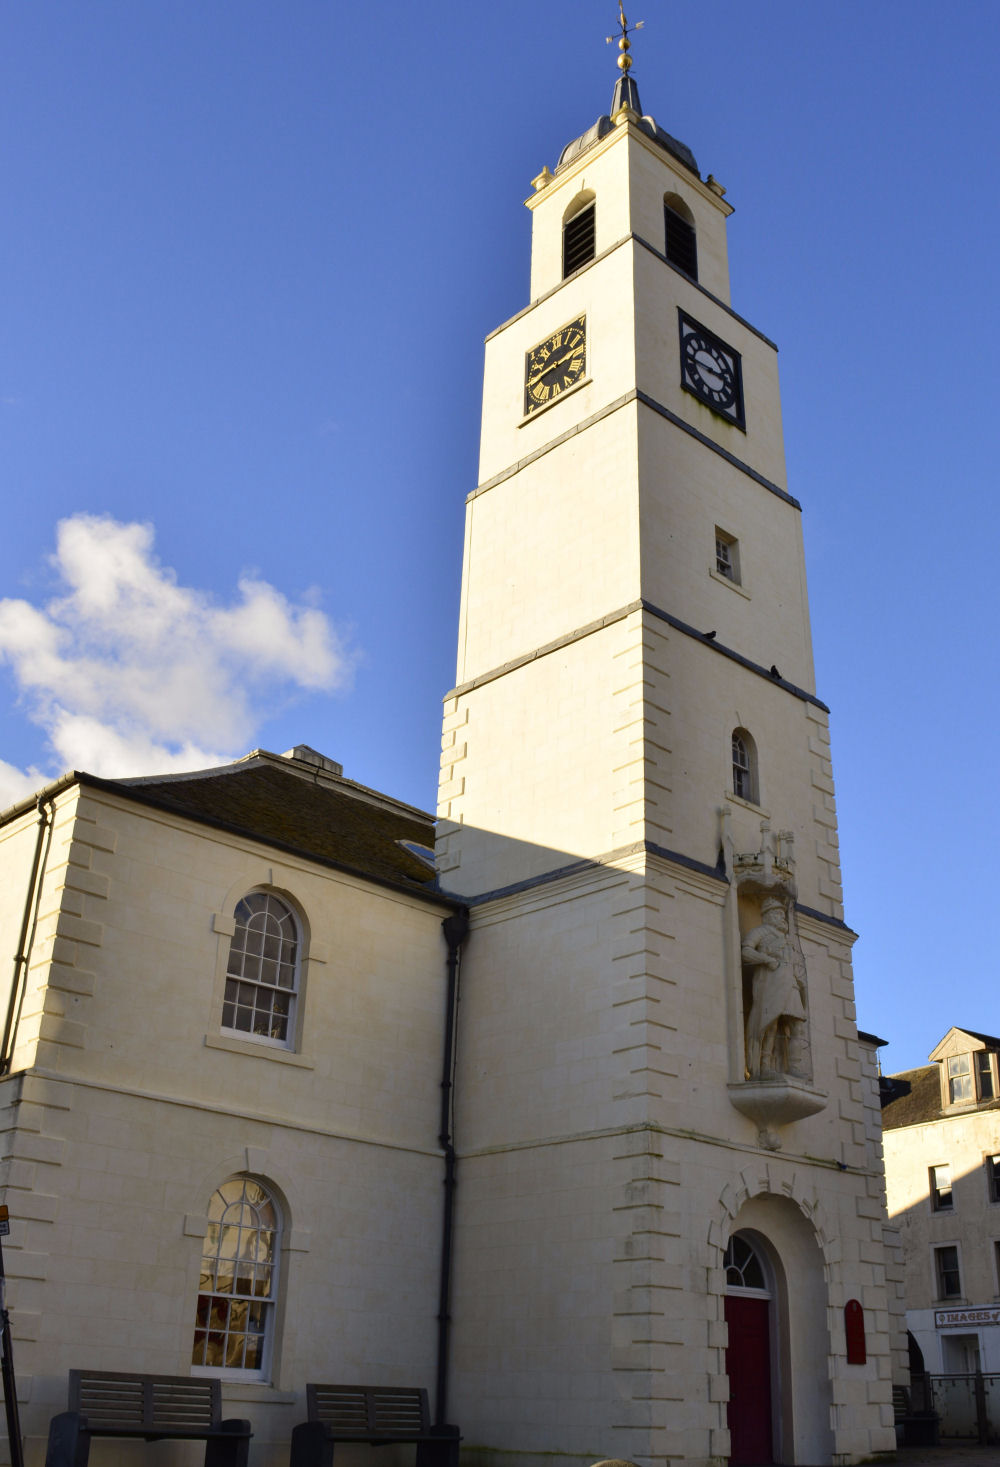 Photo of St Nicholas church steeple, Lanark